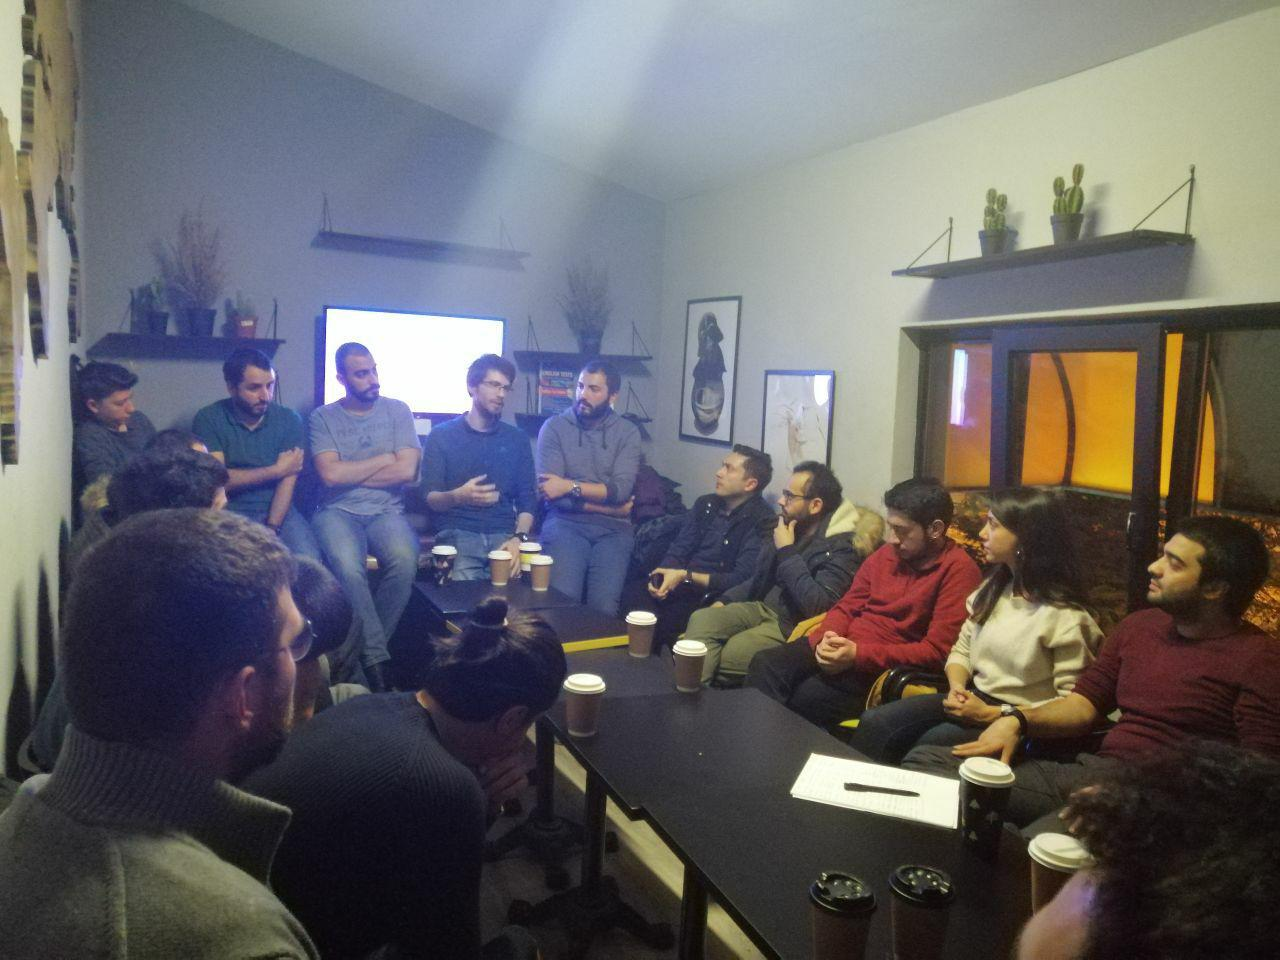 ceDevs first meeting